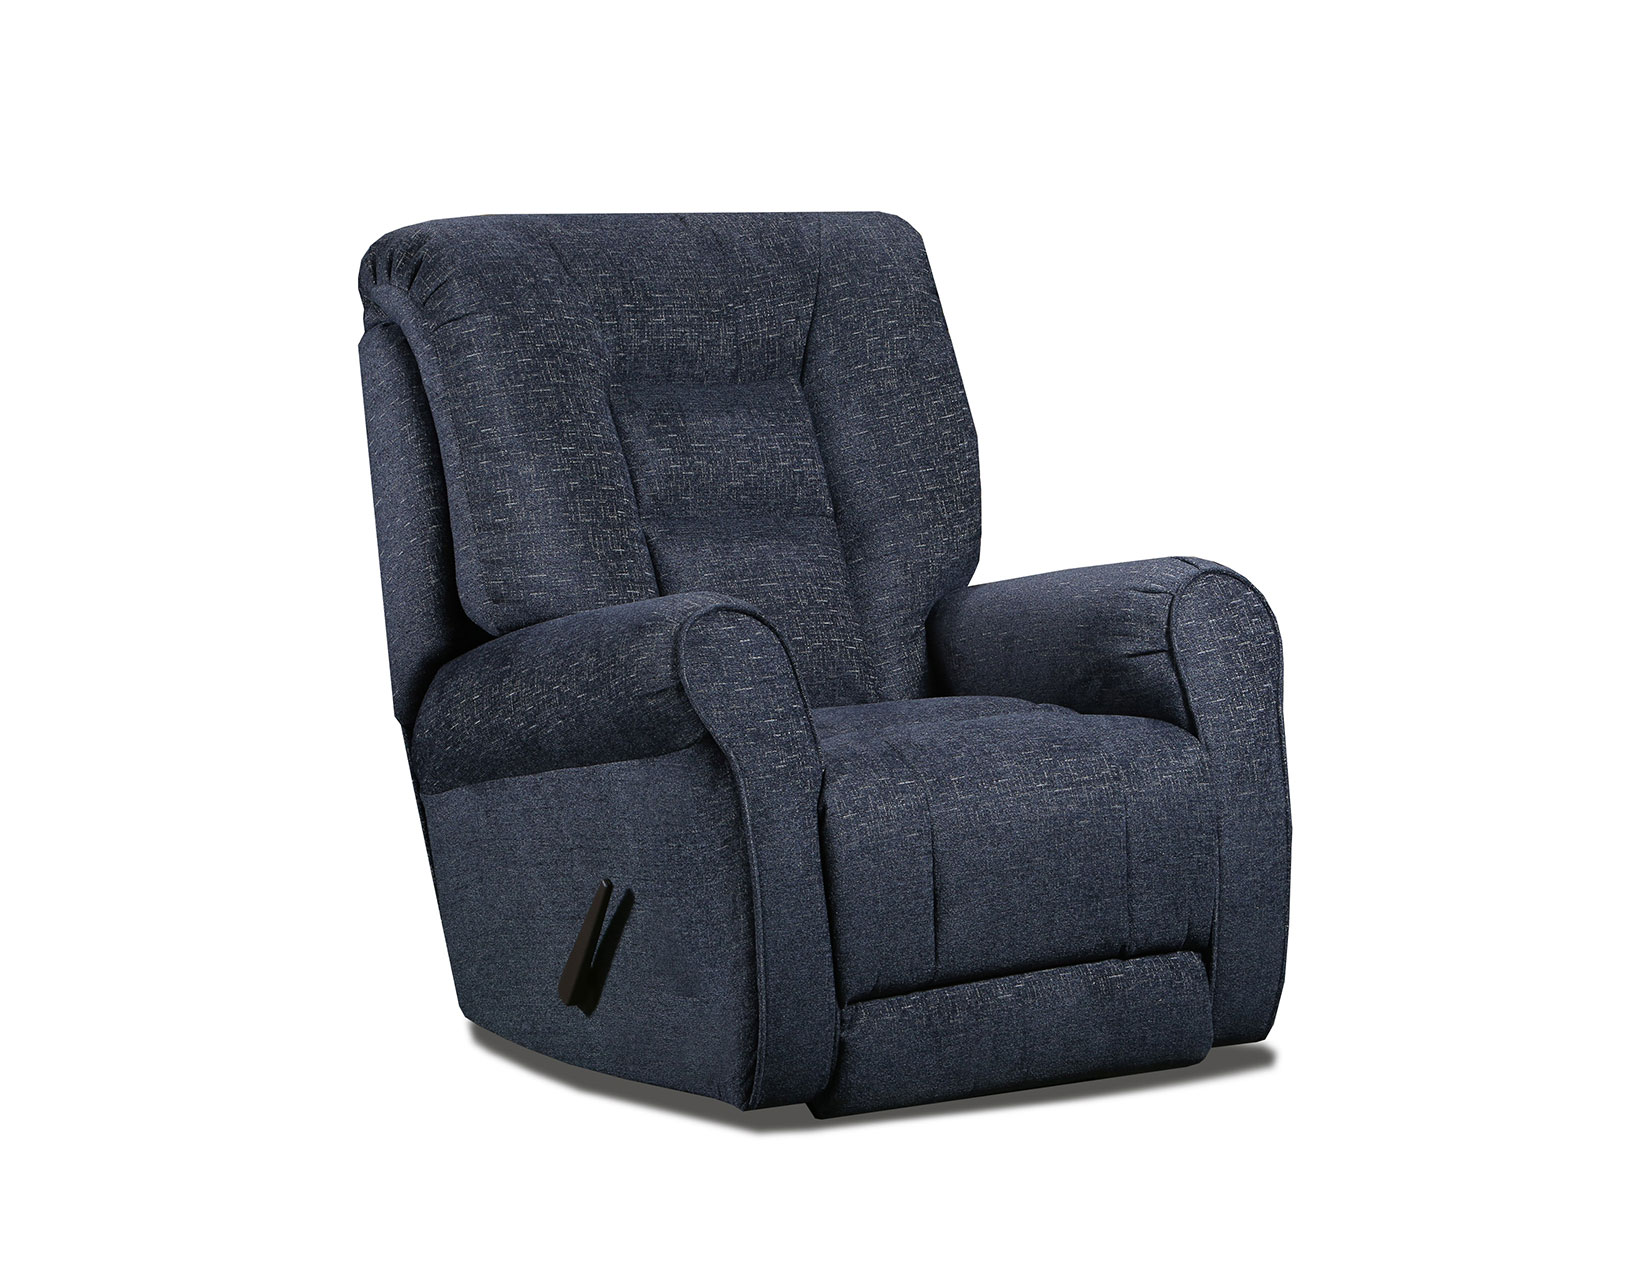 1420-GRAND-IN-116-14-WILLPOWER-CHARCOAL-SWP-JW_web